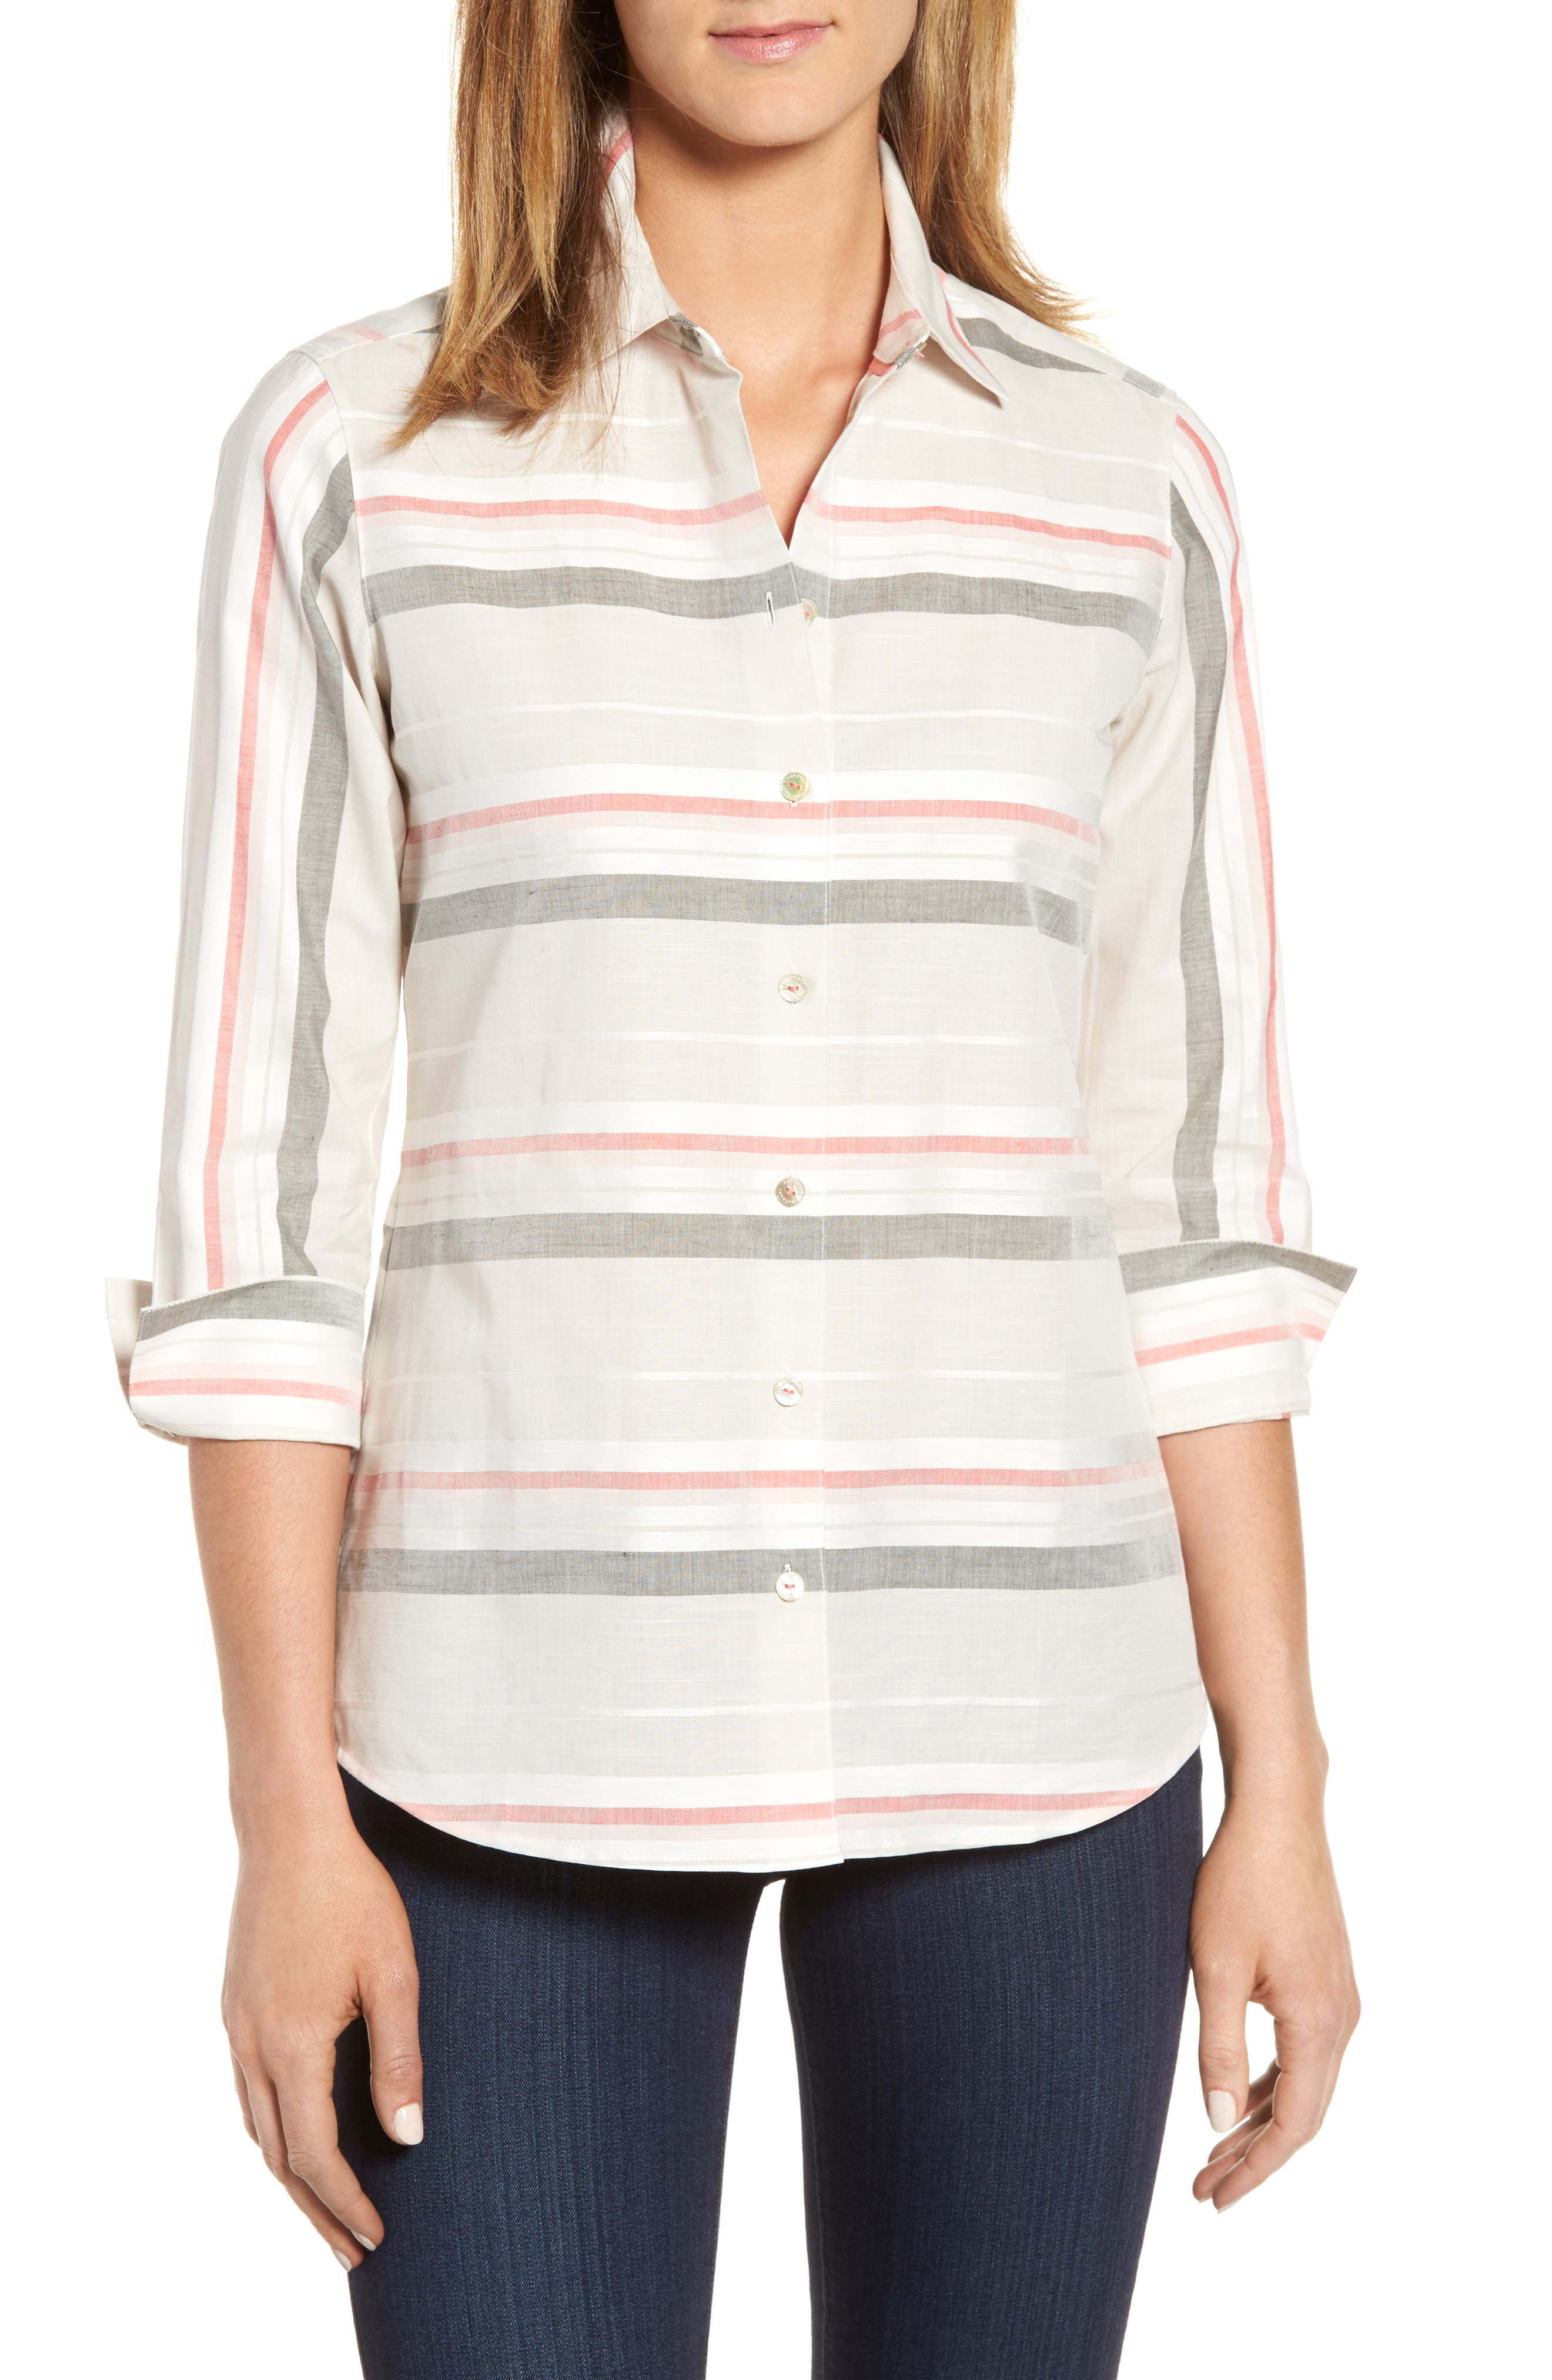 Alternate Image 1 Selected - Foxcroft Fia Stripe Cotton & Linen Shirt (Regular & Petite)